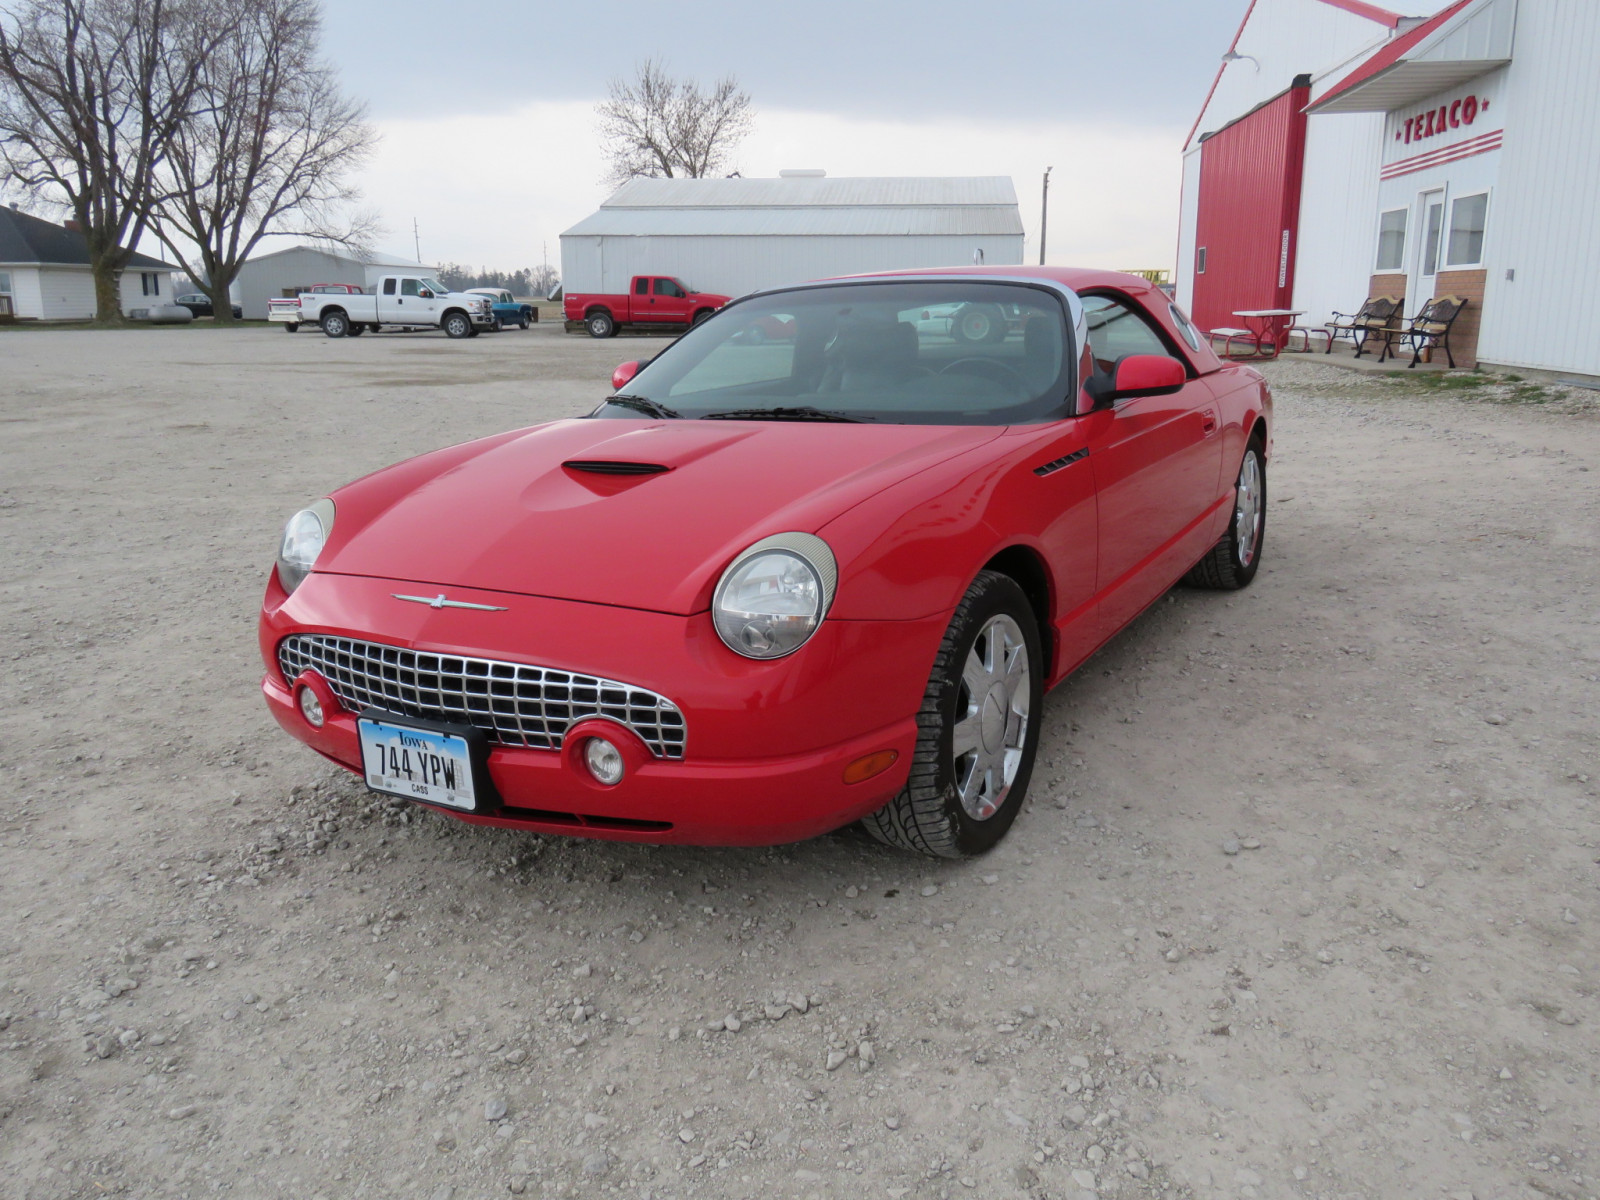 2002 Ford Thunderbird Roadster - Image 1